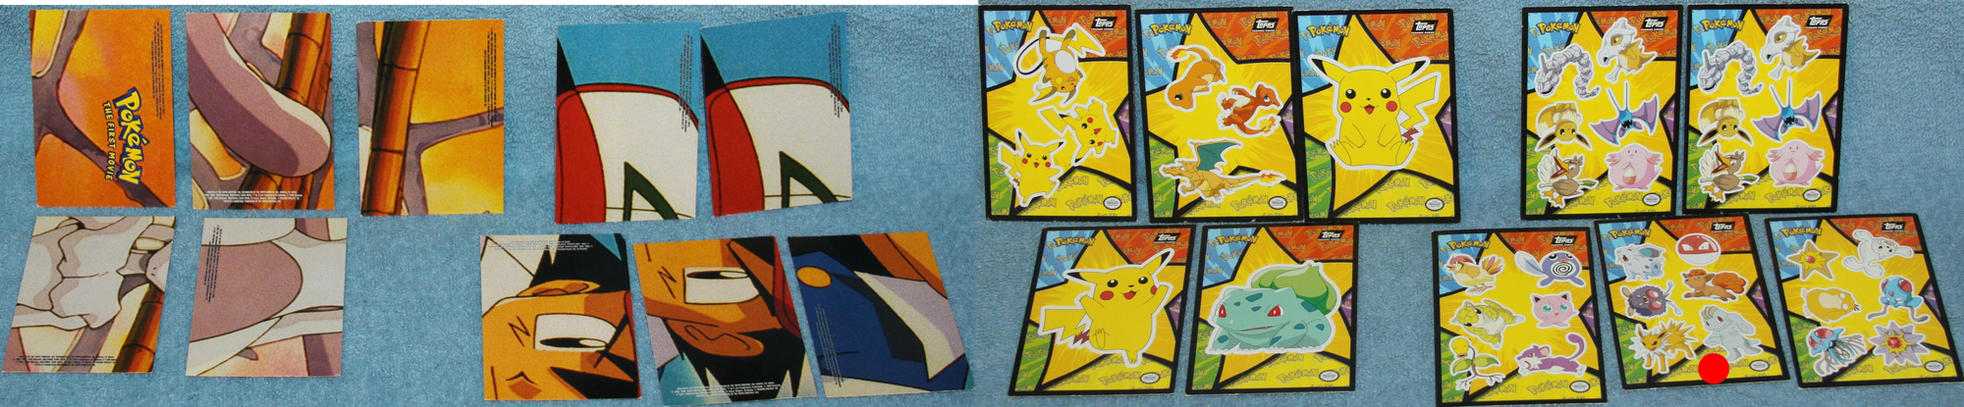 1998 Pokemon Puzzle/Stickers 4Sale-NeedNewHome-P2b by Lovely-DreamCatcher